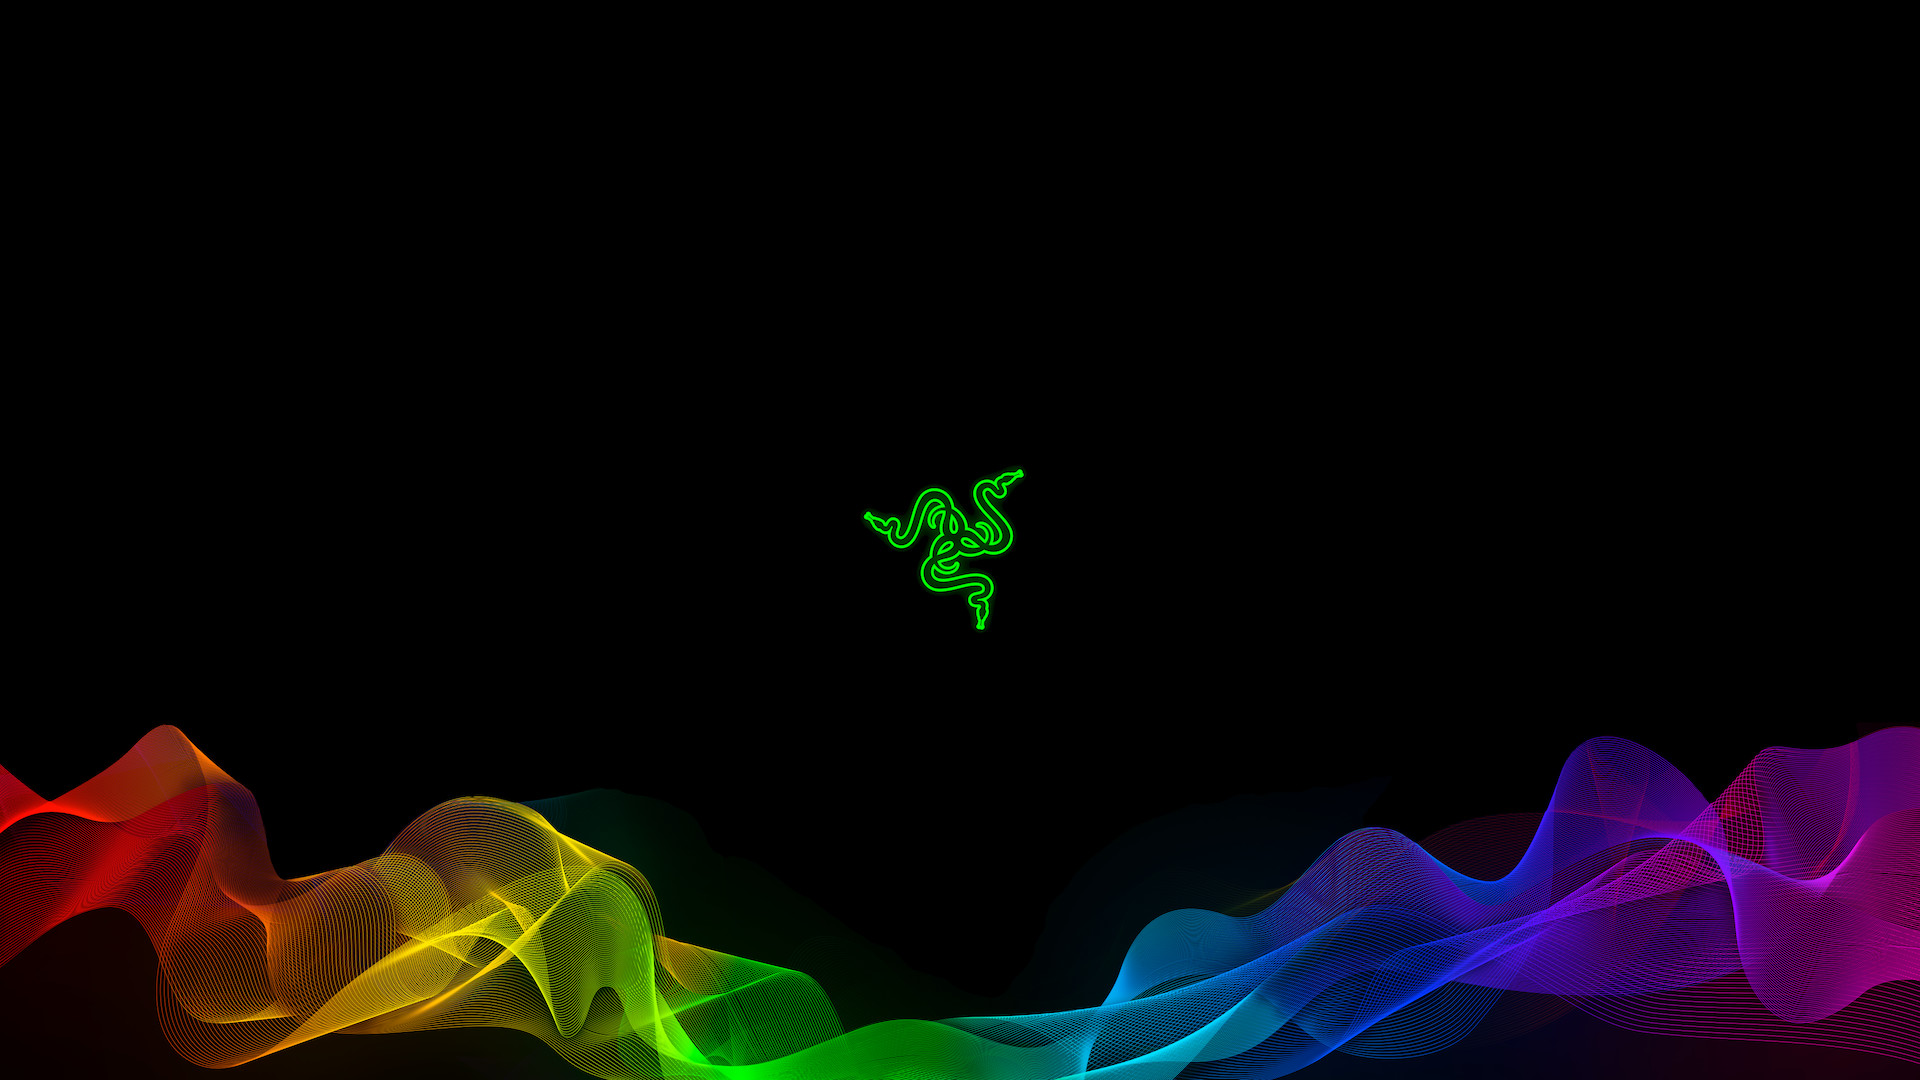 Razer HD Wallpaper | Background Image | 1920x1080 | ID:904159 - Wallpaper Abyss